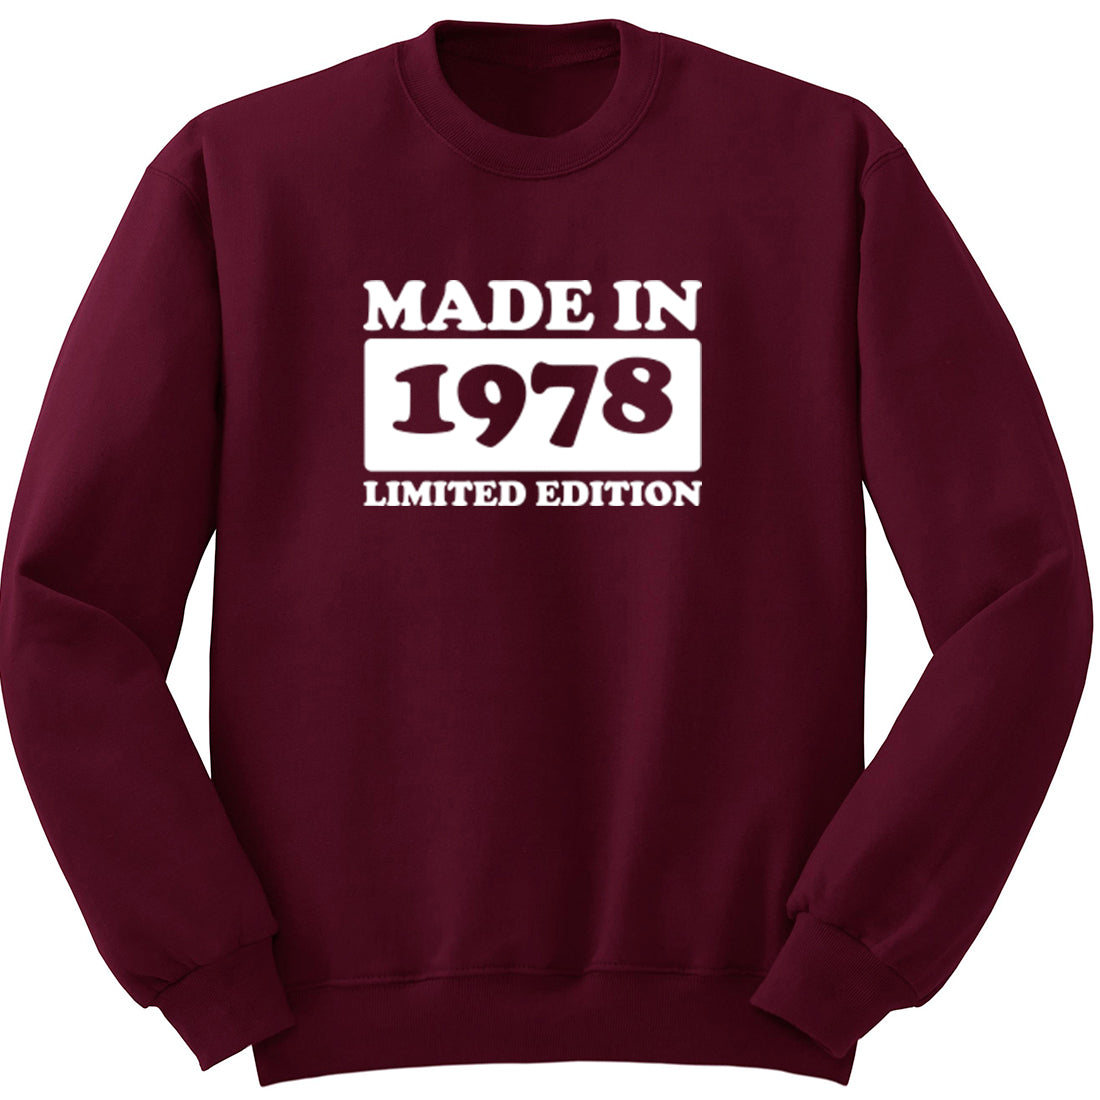 Made In 1978 Limited Edition Unisex Jumper K1935 - Illustrated Identity Ltd.